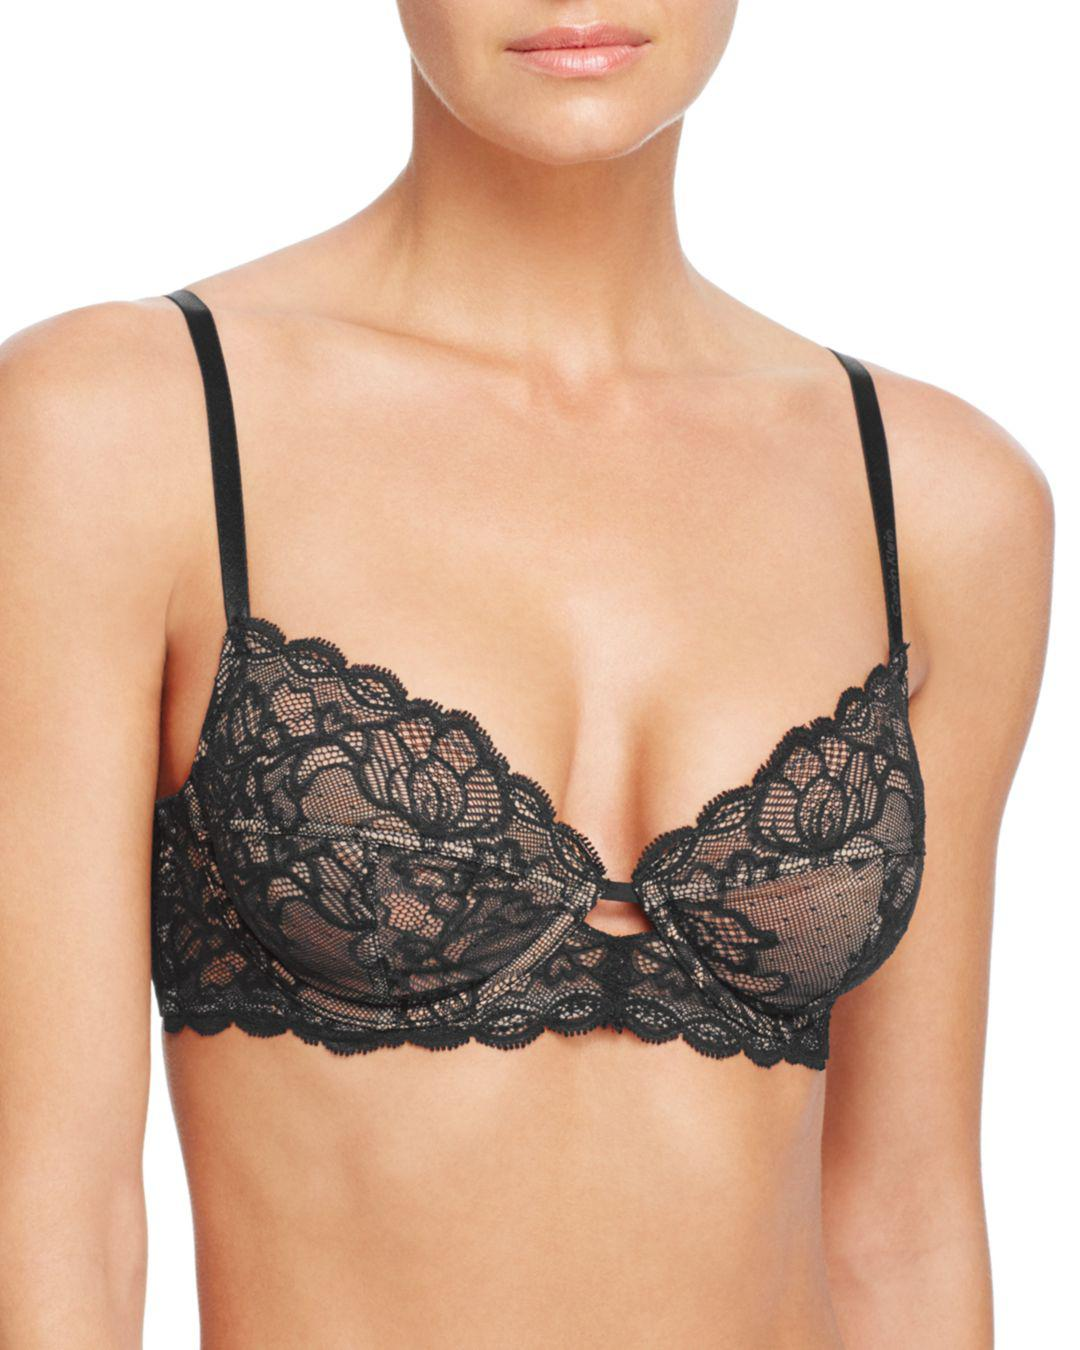 39d7f51e2e Calvin Klein Qf1741 Seductive Comfort With Lace Multi Part Cup Bra ...